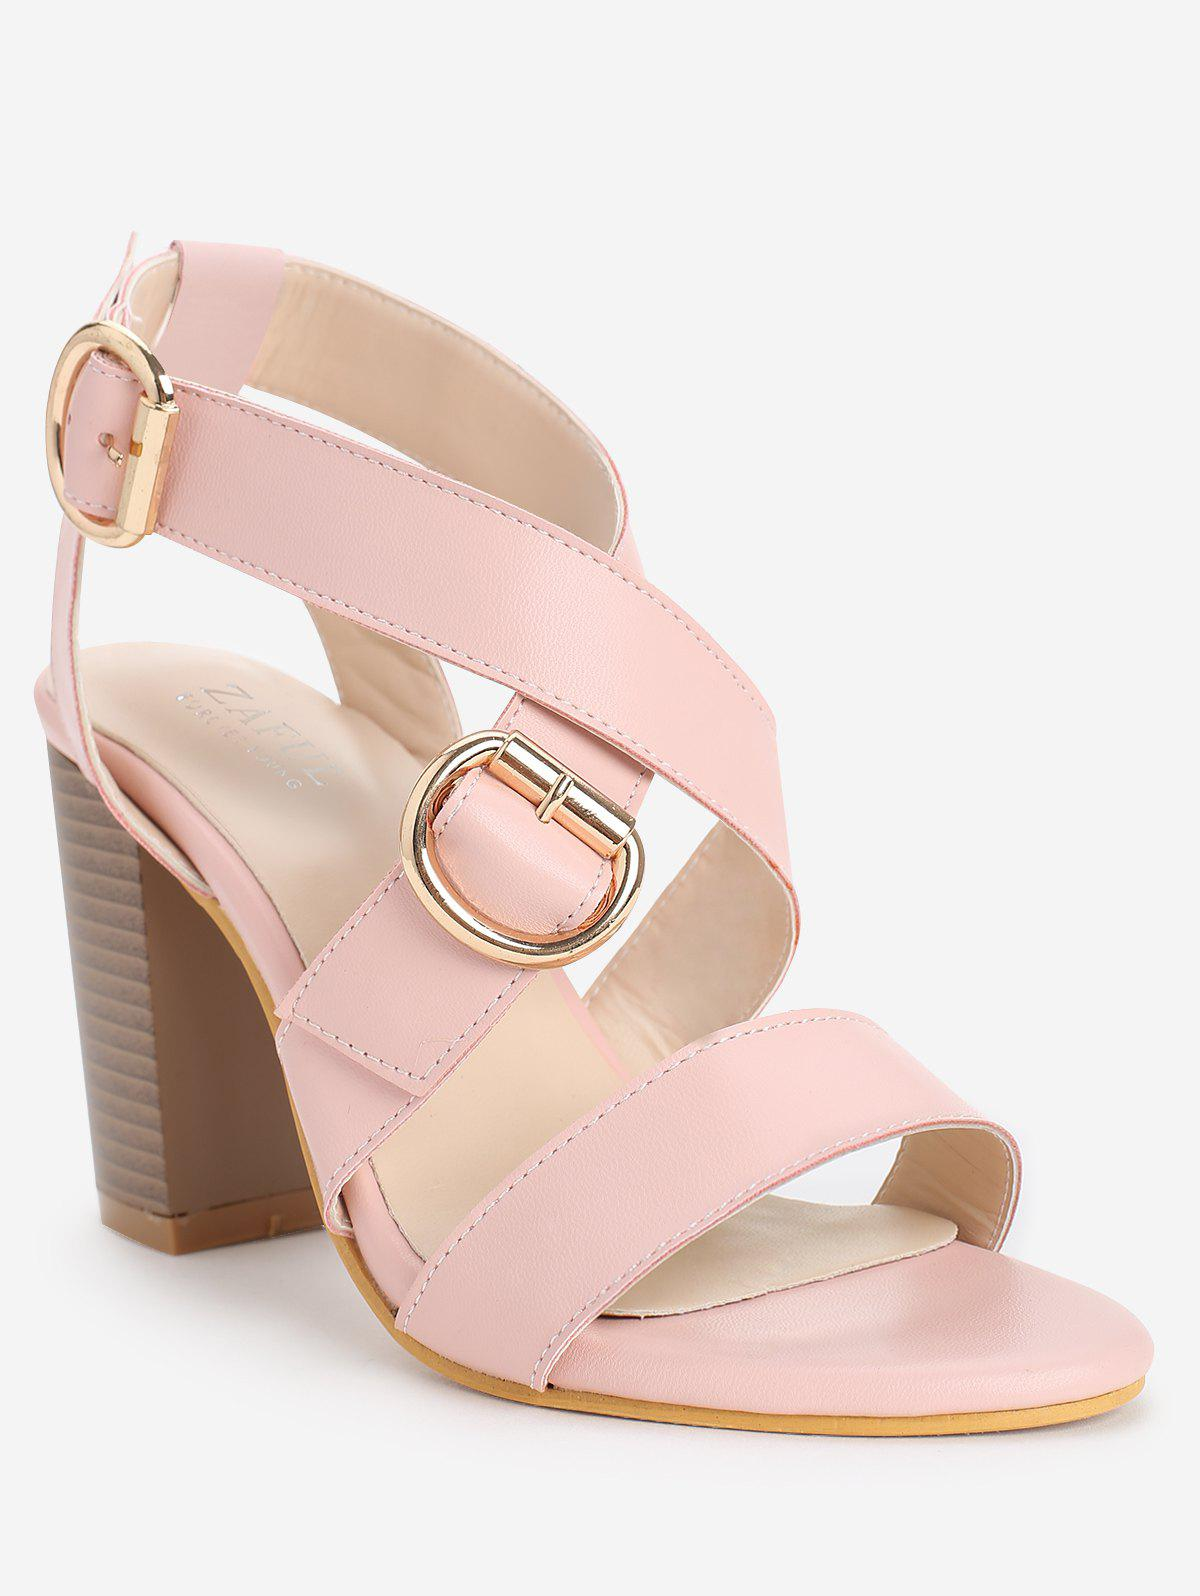 Hot Retro High Heel Cross Strap Ankle Wrap Sandals